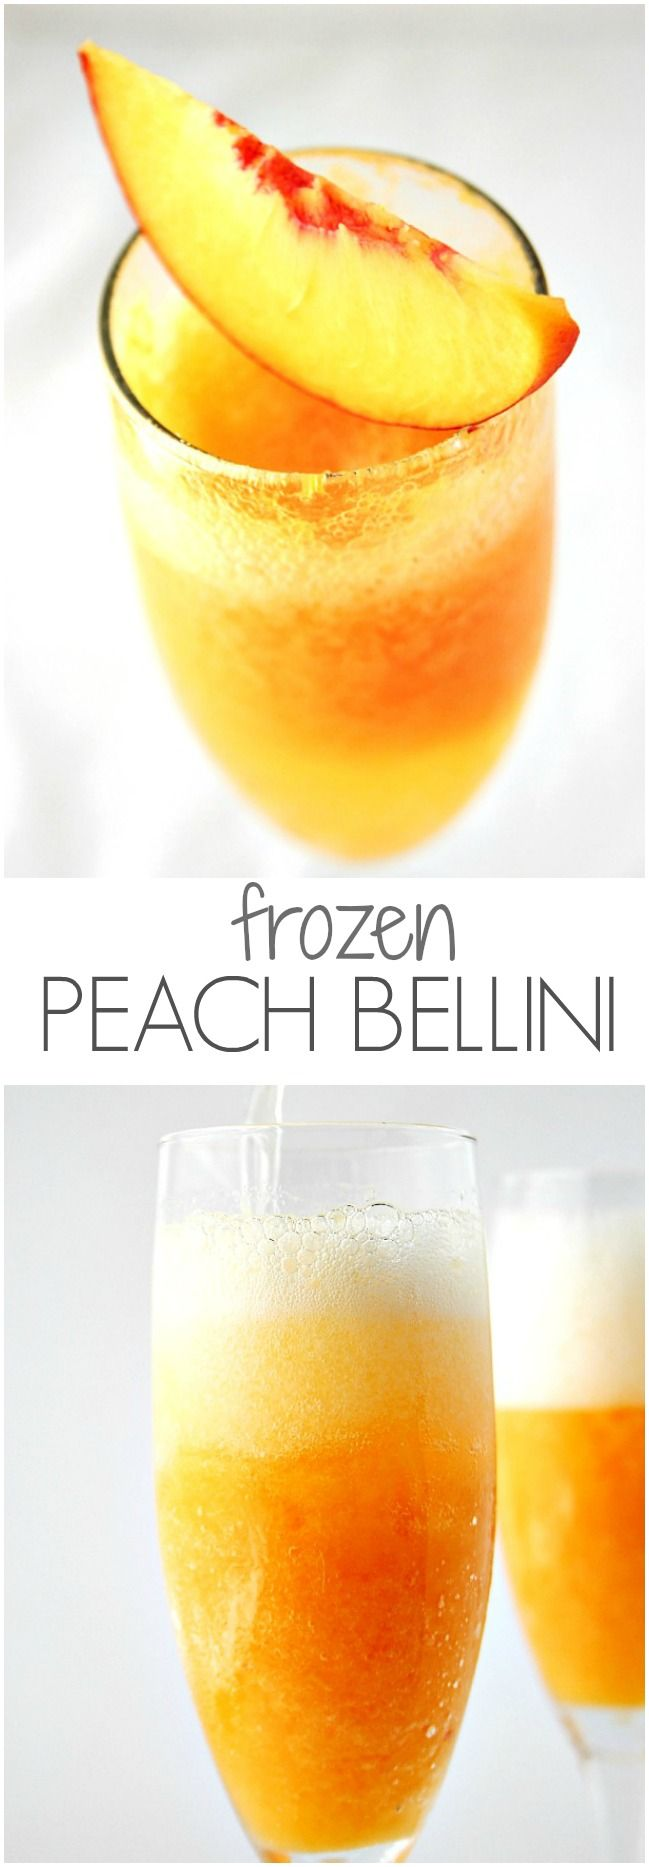 Frozen Peach Bellini - jazz up sparkling wine or champagne with frozen peach puree! @crunchycreamysw